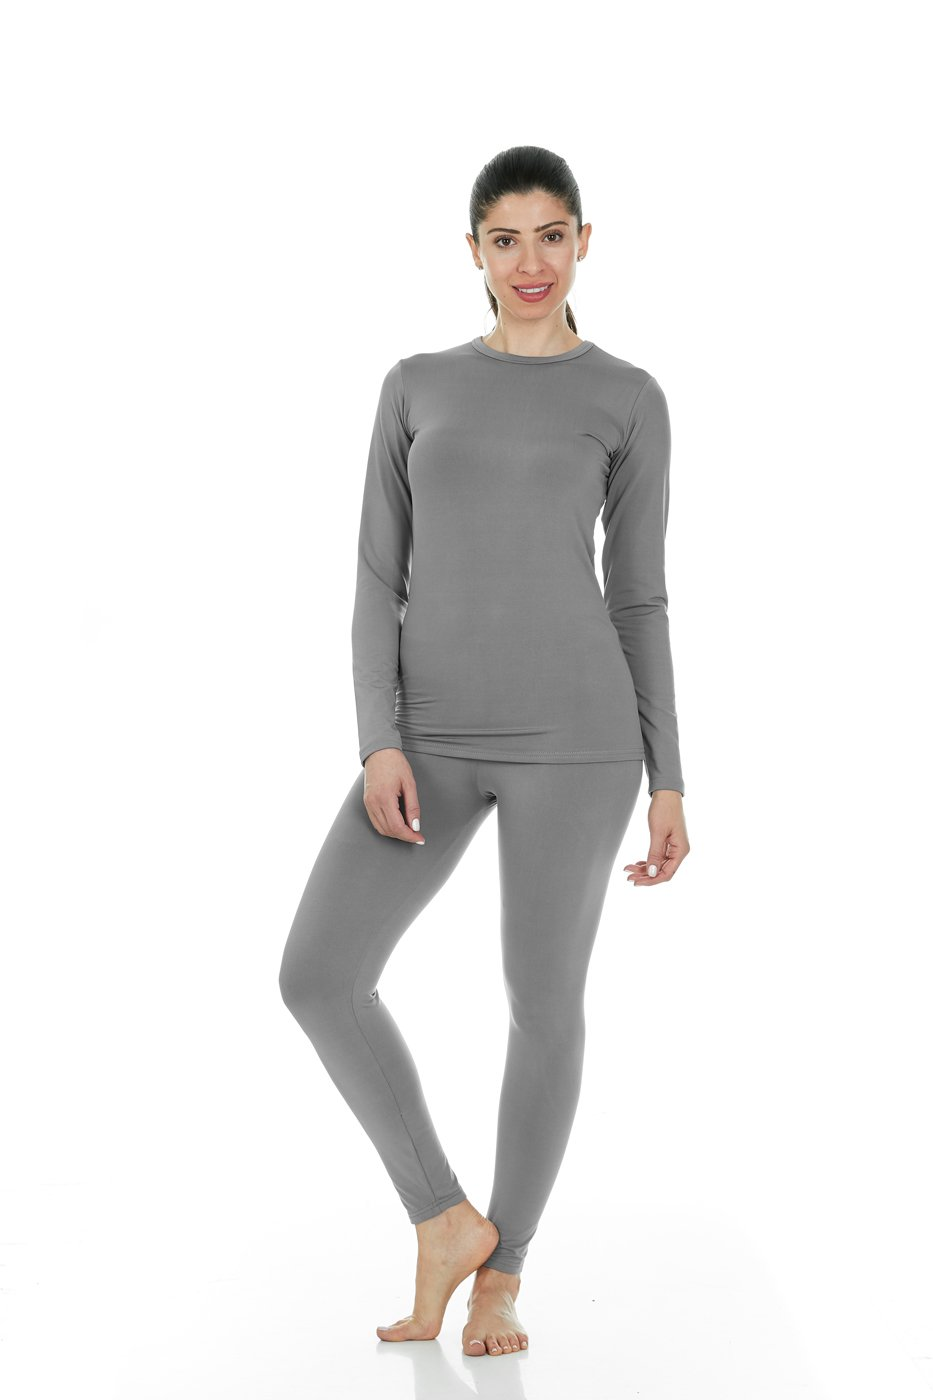 Thermajane Women's Ultra Soft Thermal Underwear Long Johns Set with Fleece Lined (2X-Large, Grey) by Thermajane